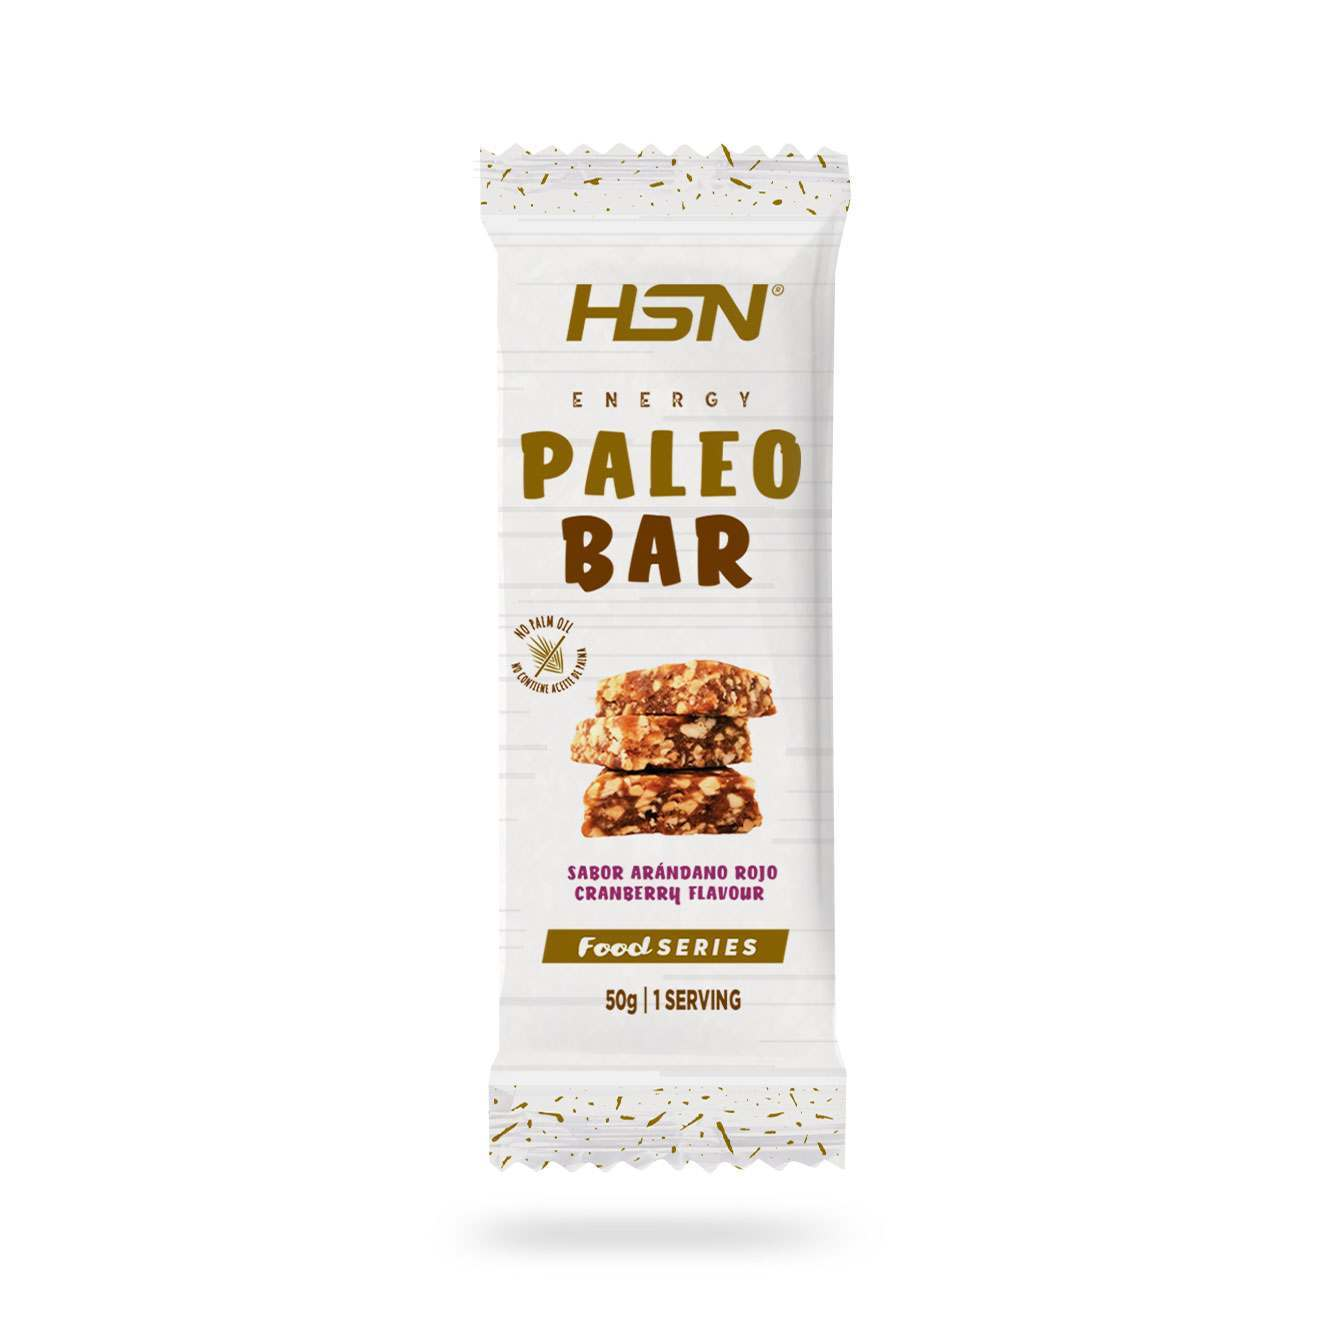 ENERGY PALEO BAR